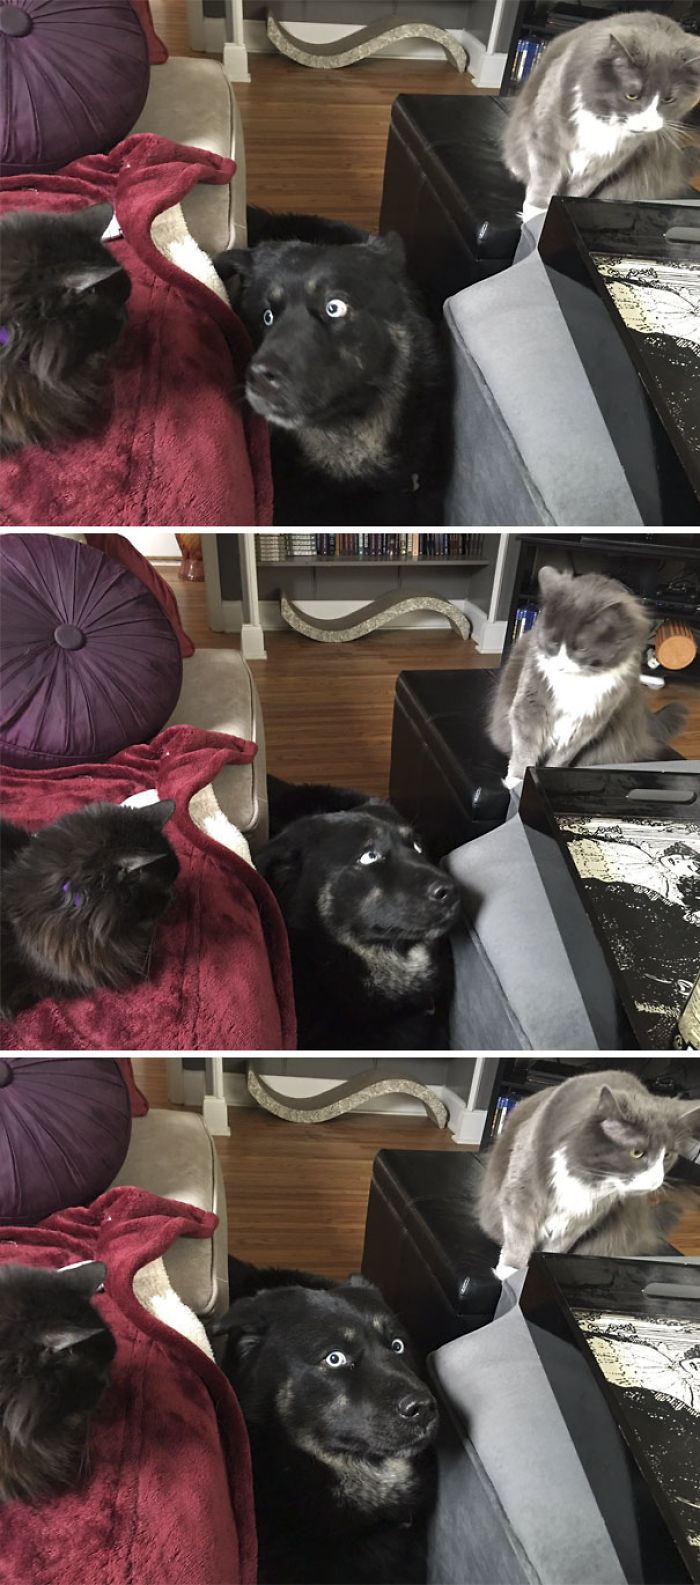 cats-dogs-not-getting-along-hate-living-together-3-59b1112825349__700